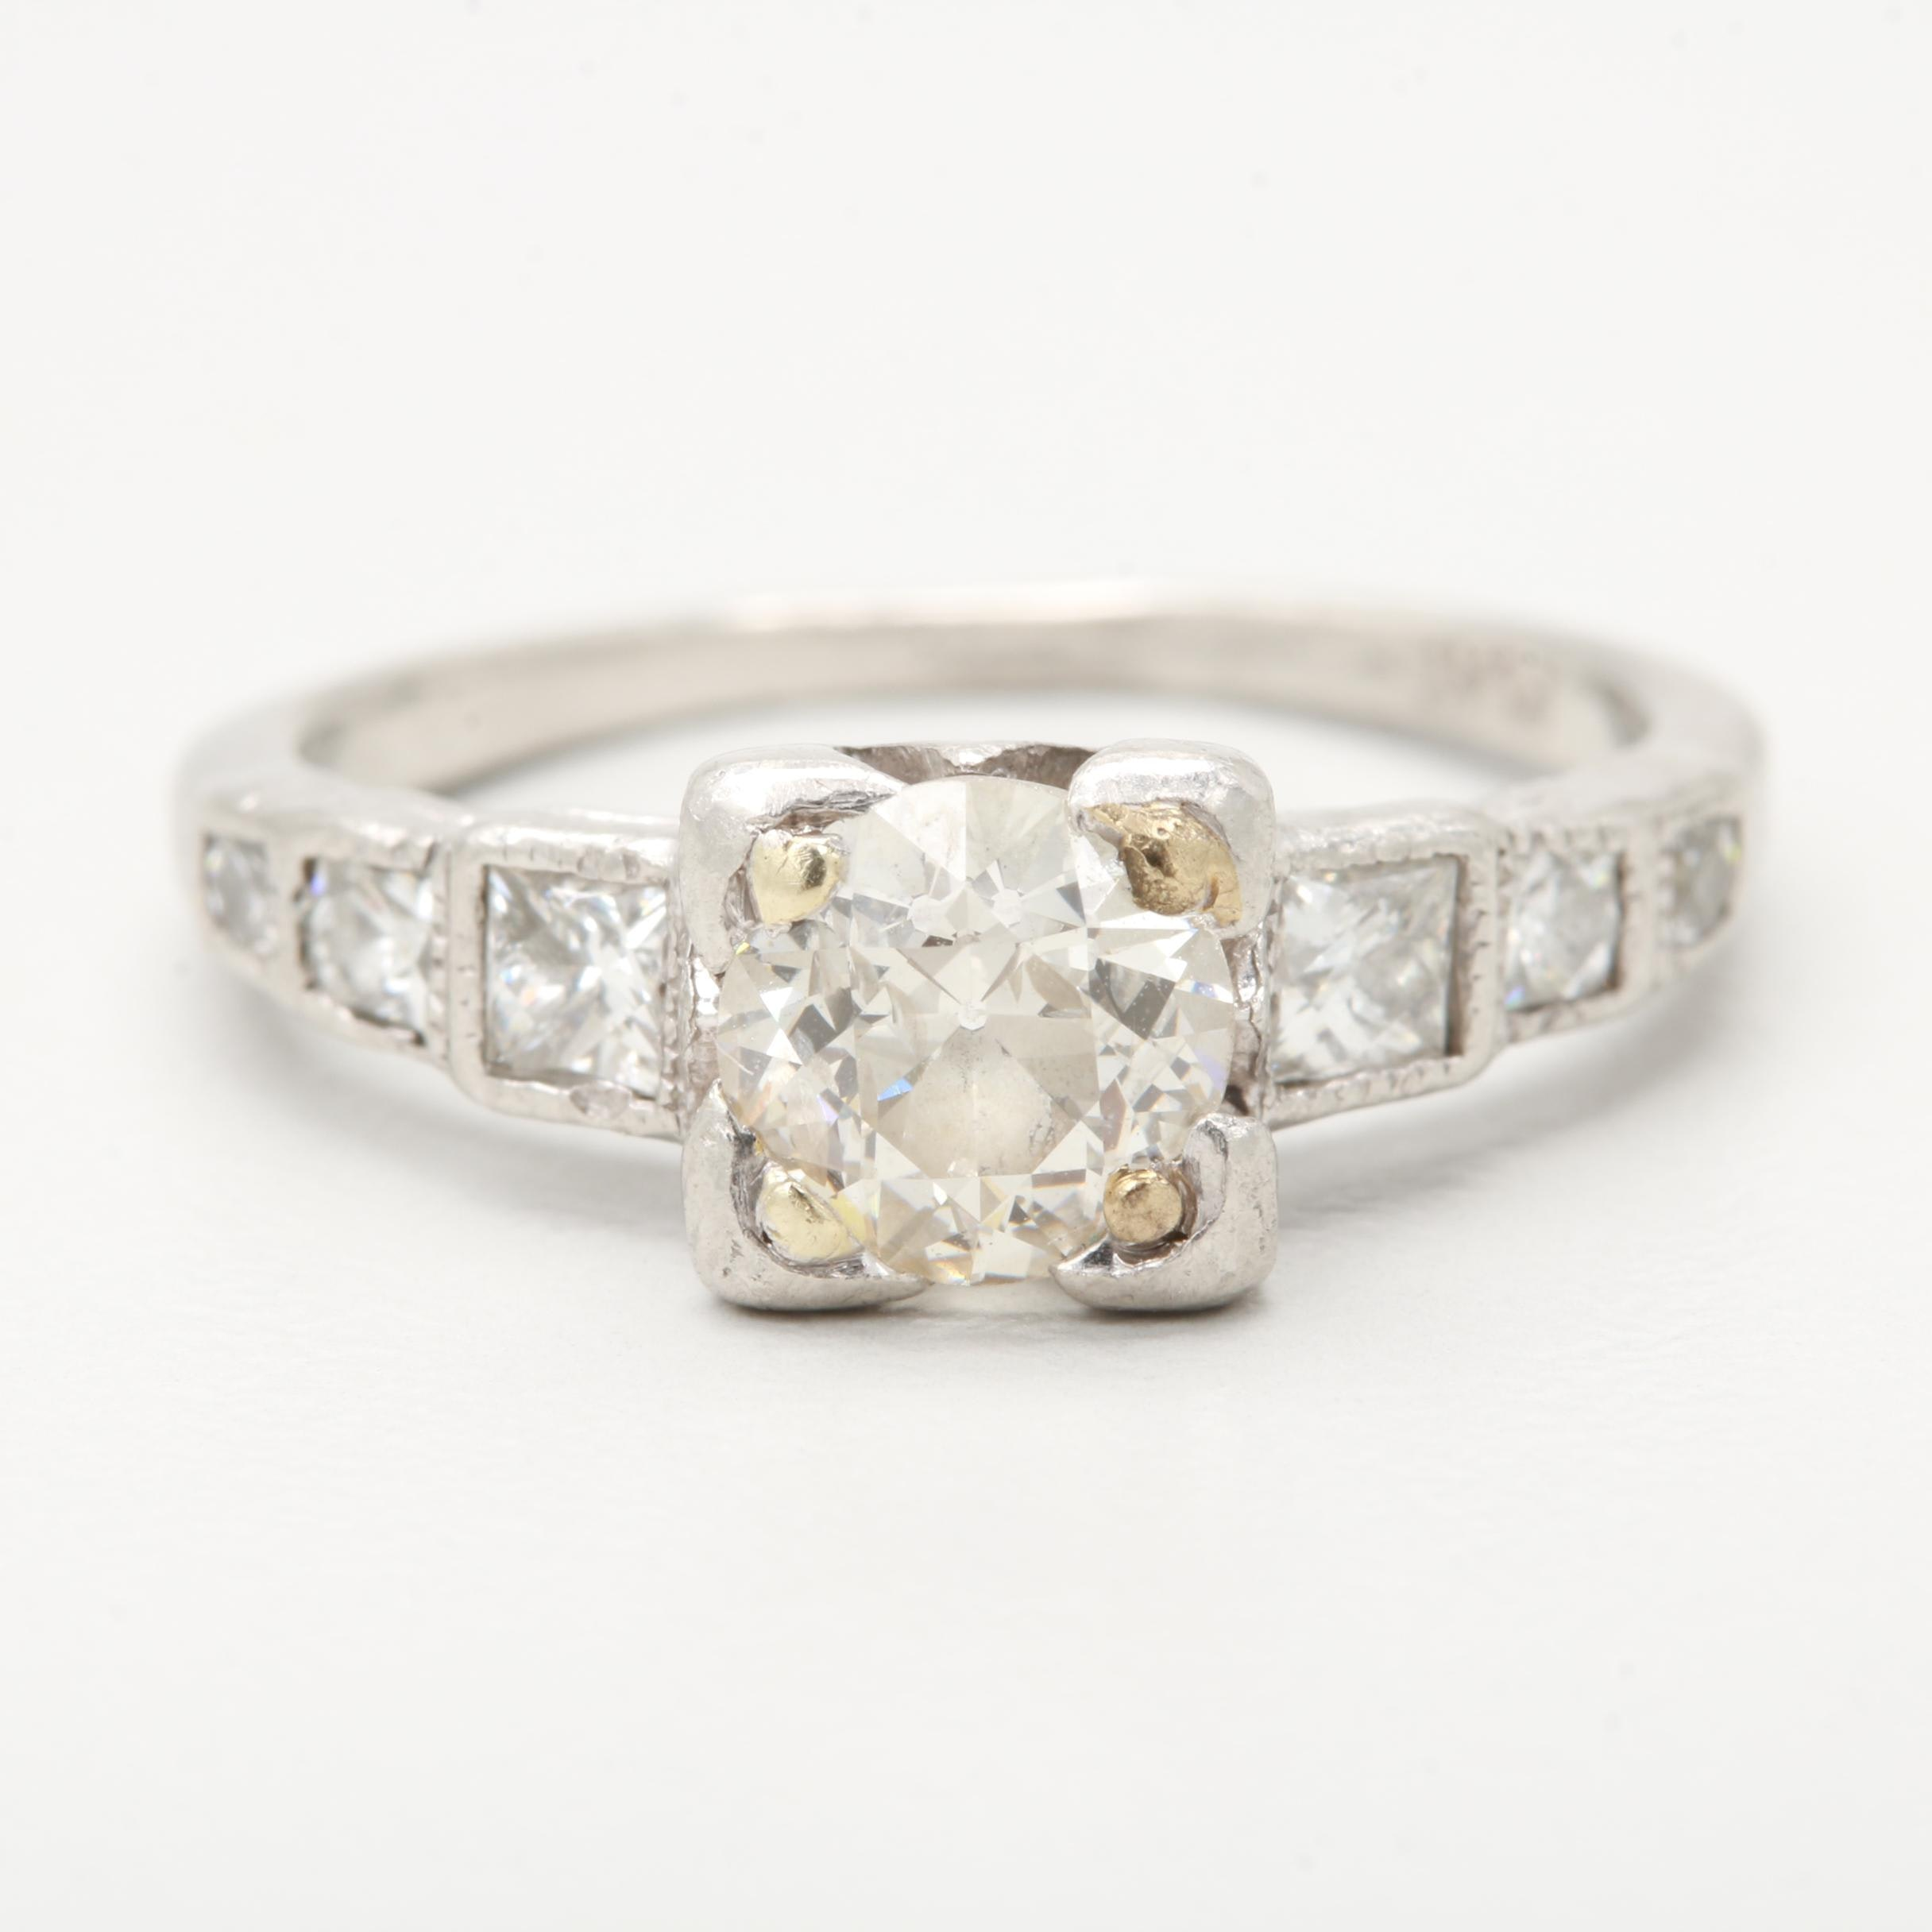 Platinum 1.06 CTW Diamond Ring